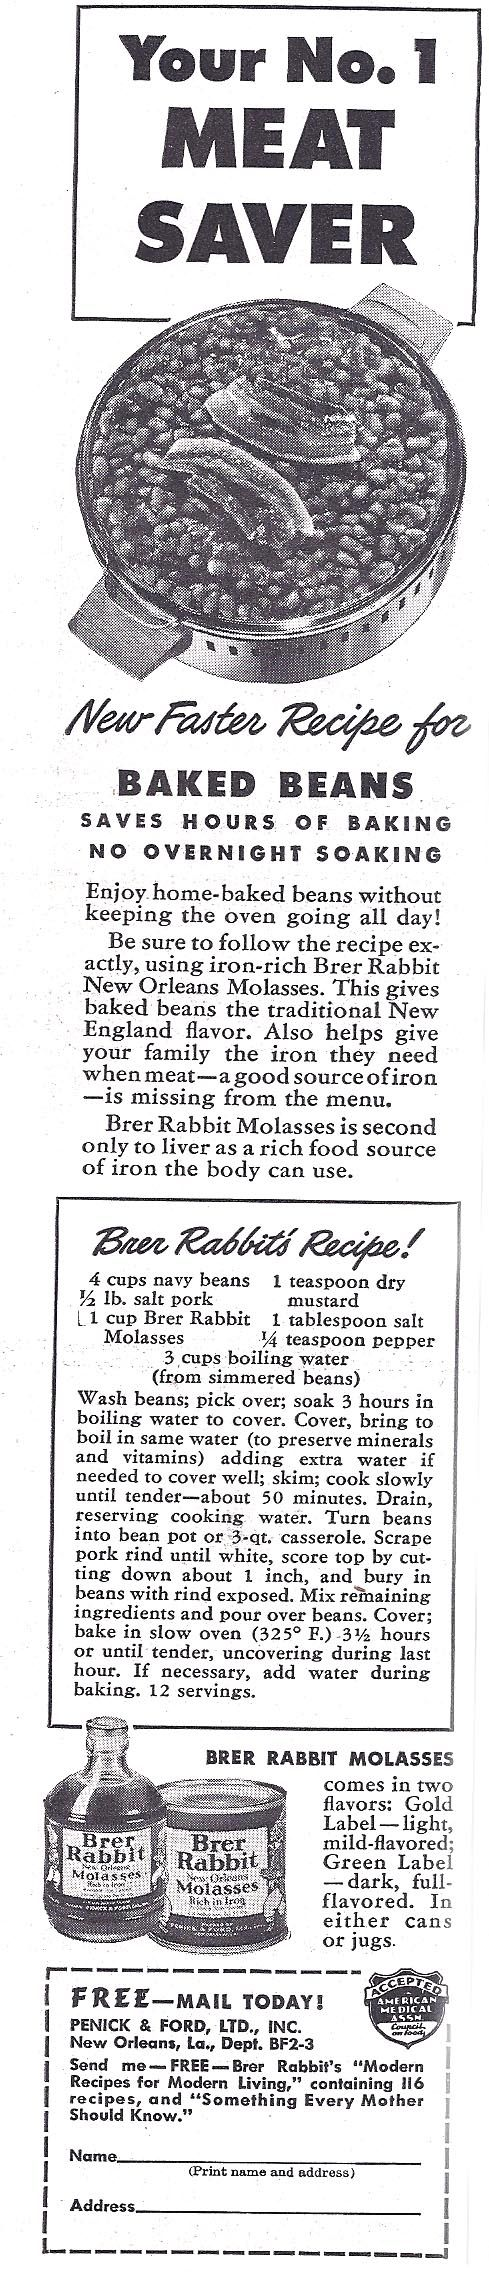 1943 recipe for Brer Rabbit Baked Beans During World War II, food-related advertising was all about saving money and making the most of ration coupons.